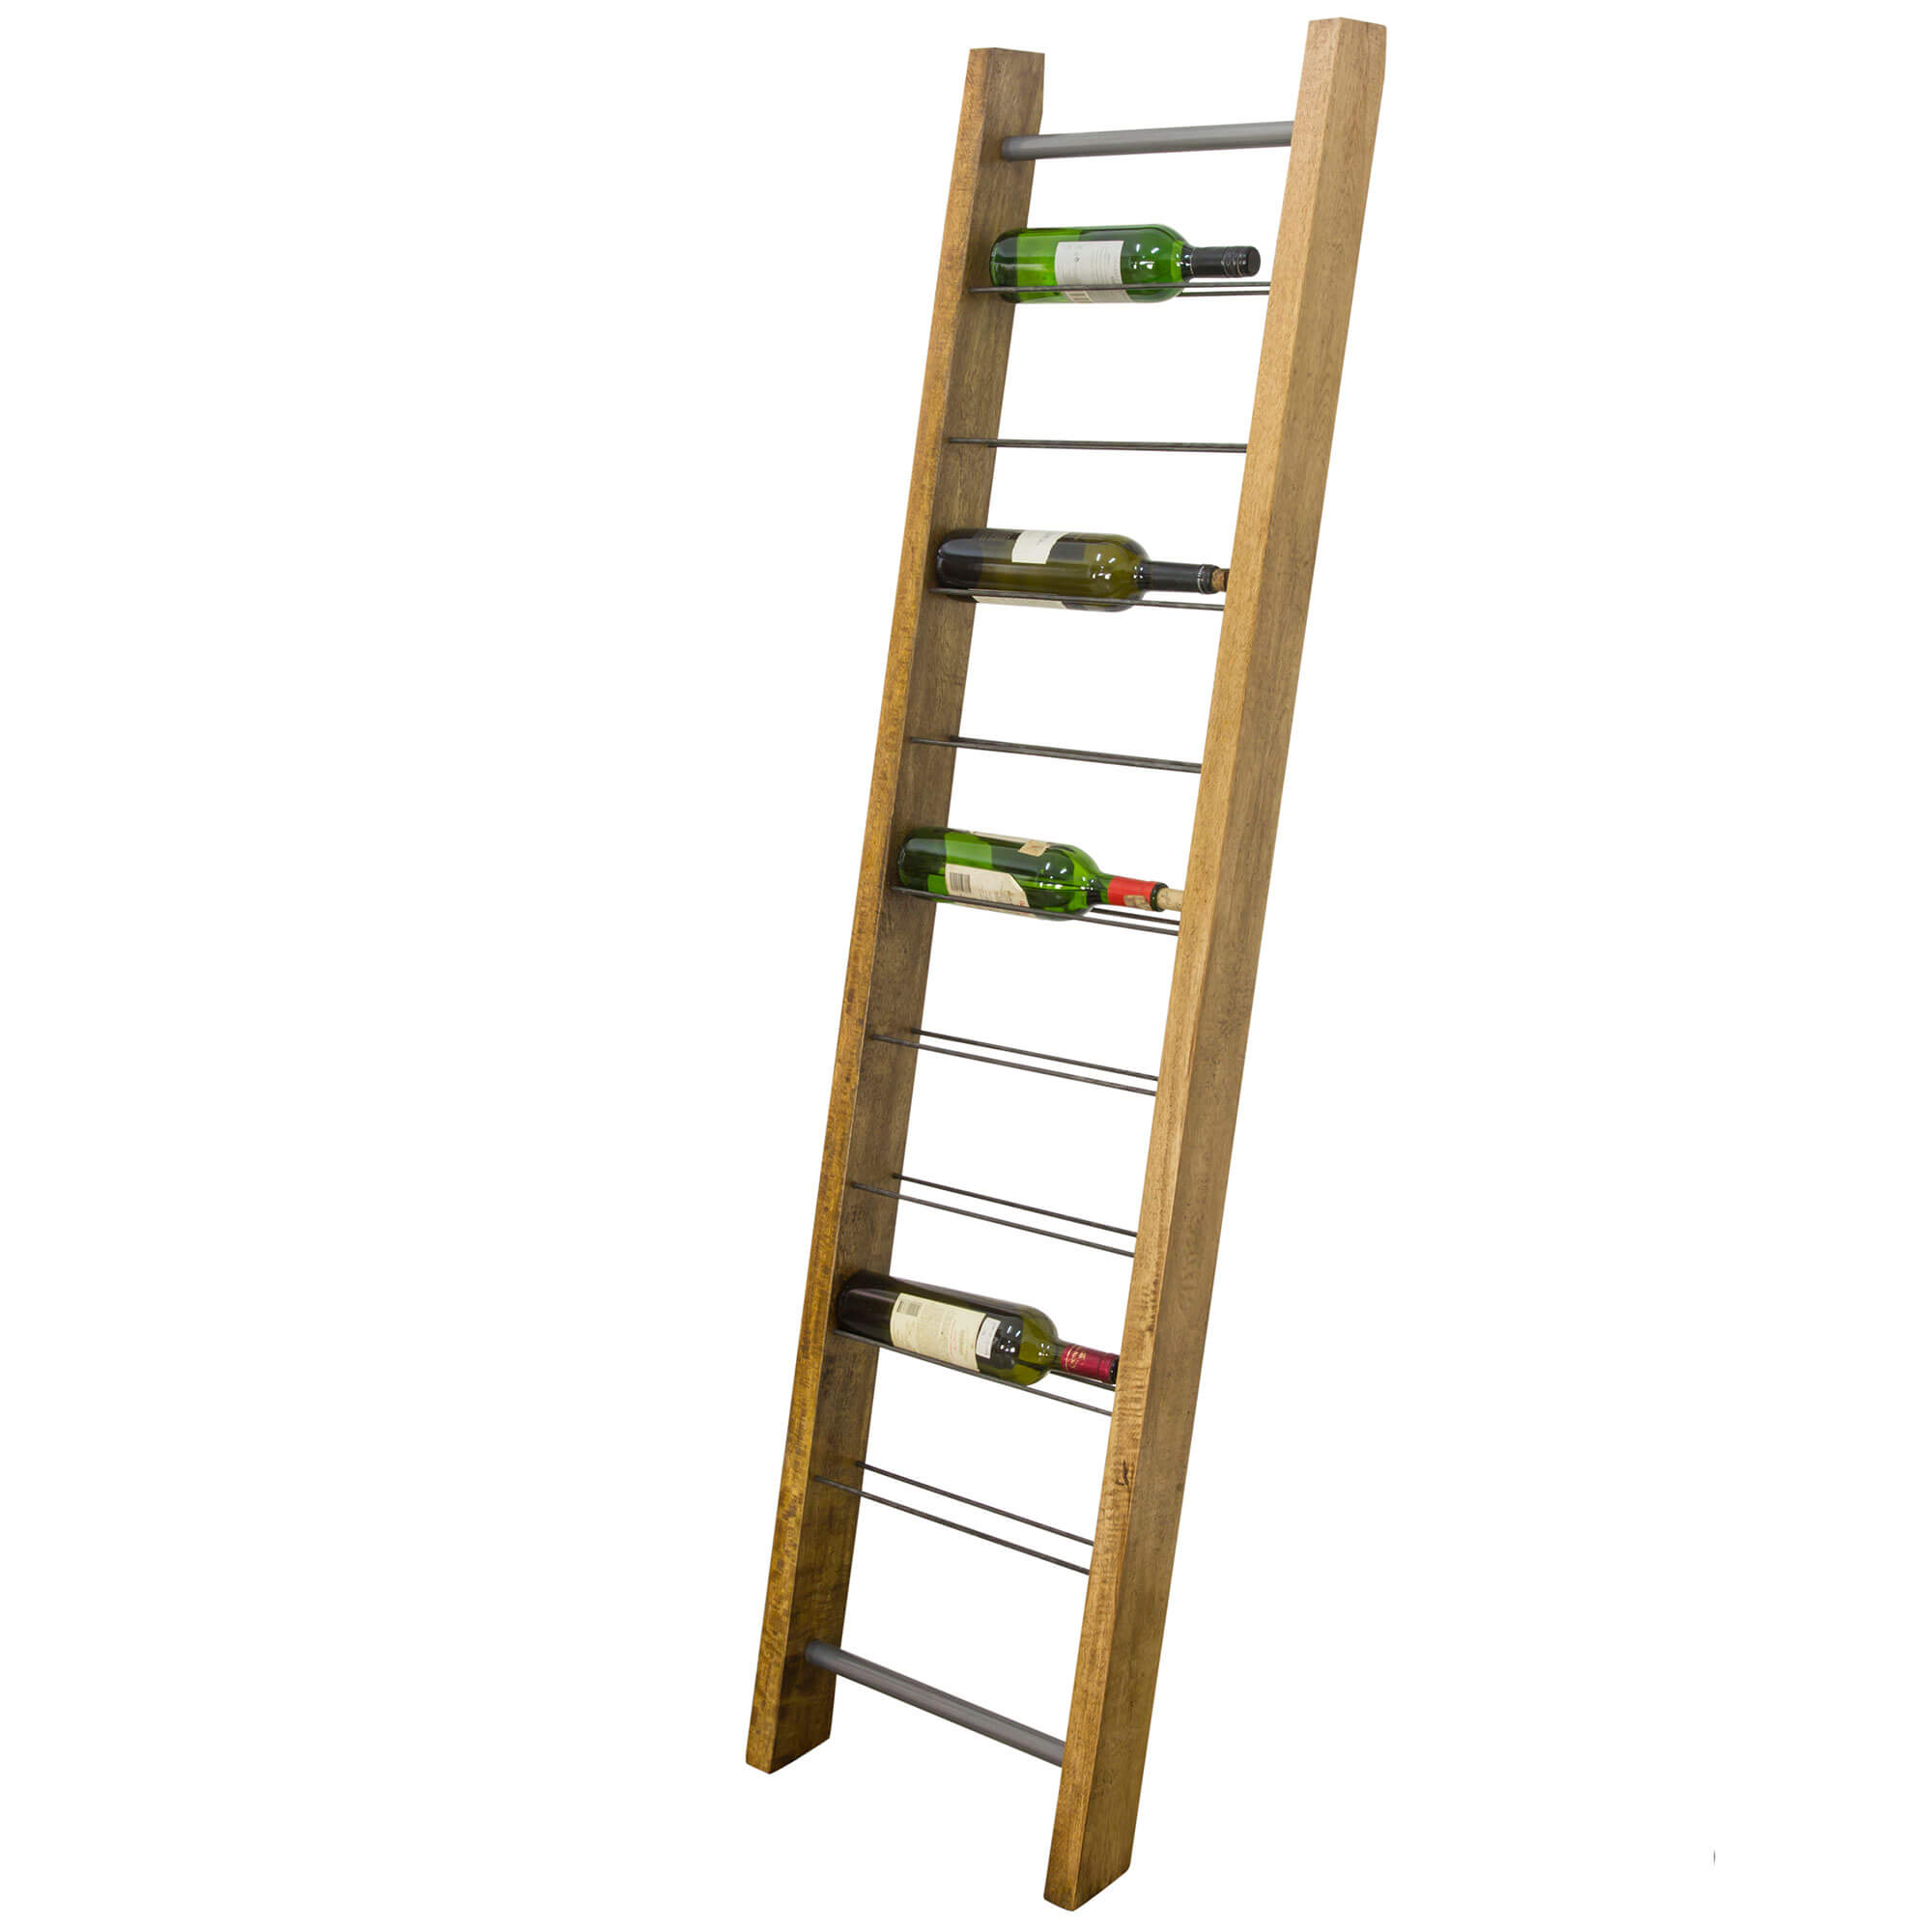 Urban Leaning 9 bottle Wine Rack | Solid Wood |